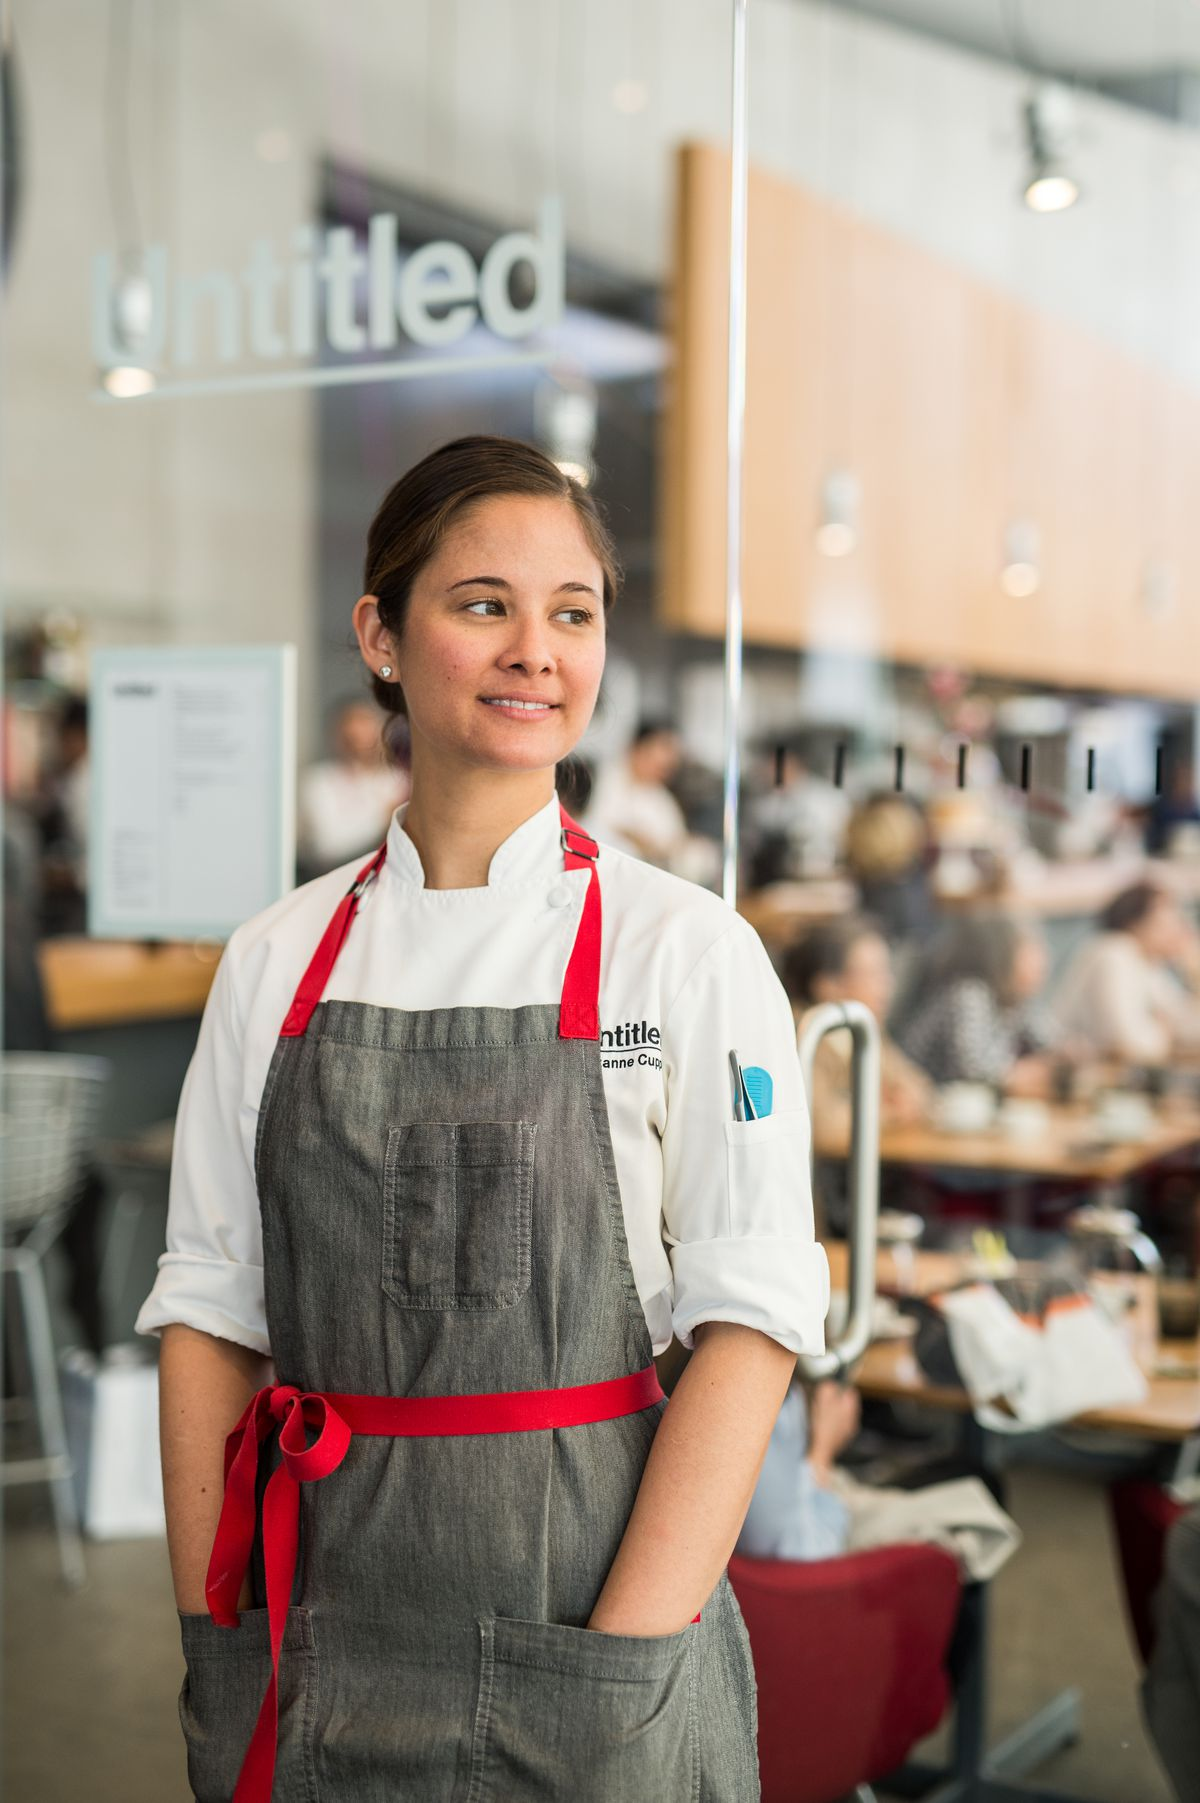 Meet Suzanne Cupps, the Only Female Executive Chef at Union Square Hospitality - Eater NY